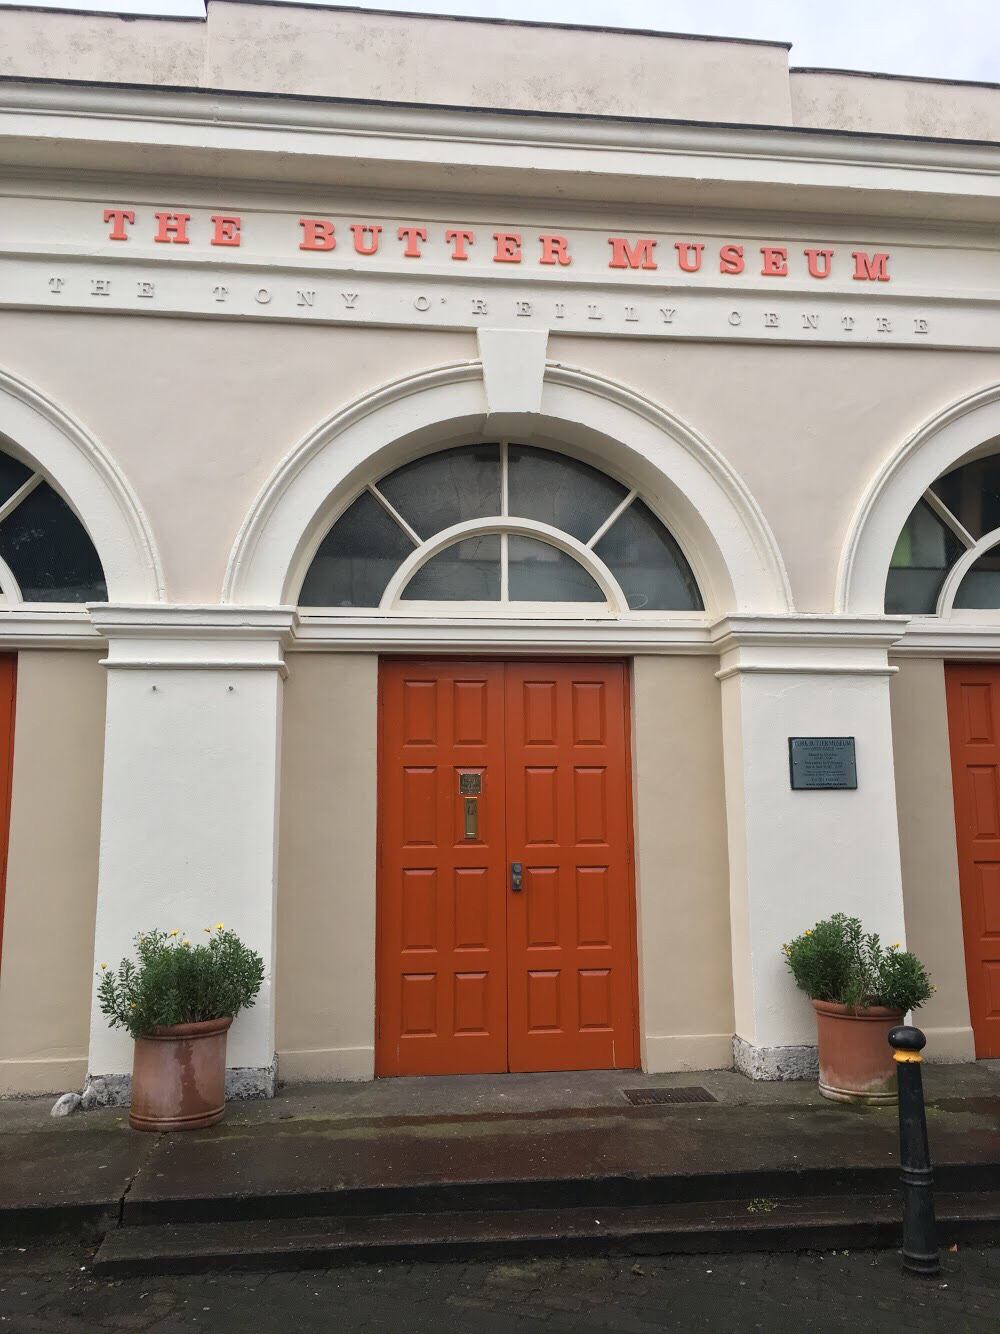 Butter Museum, Cork City, Ireland